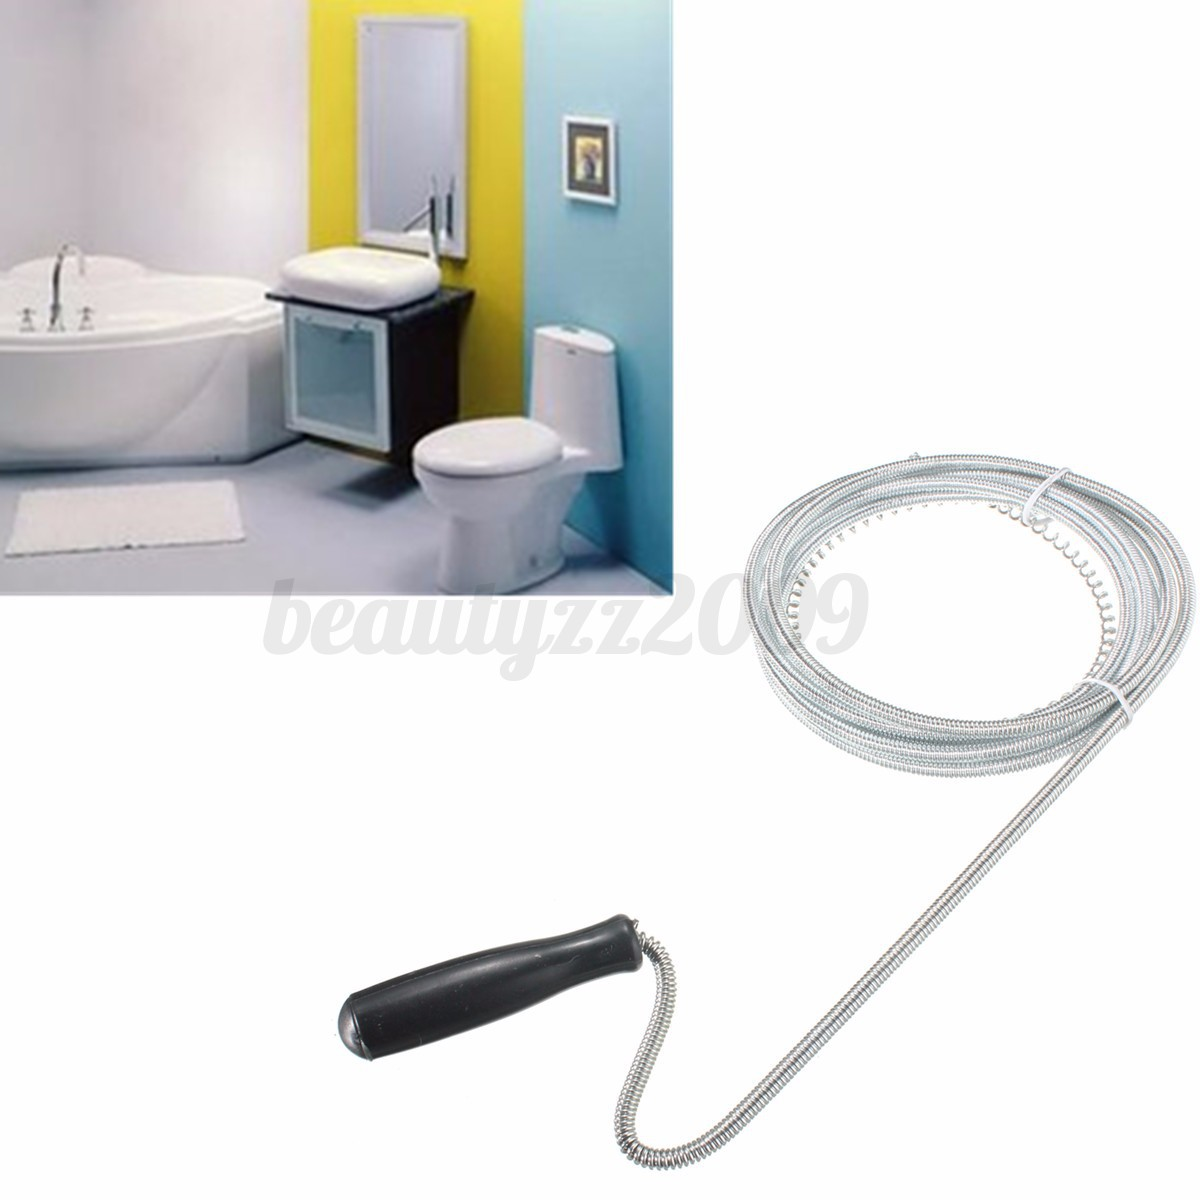 Kitchen Sink Unblocker: 3m Sink Unblocker Drain Pipe Steel Wire Cleaner Plunger